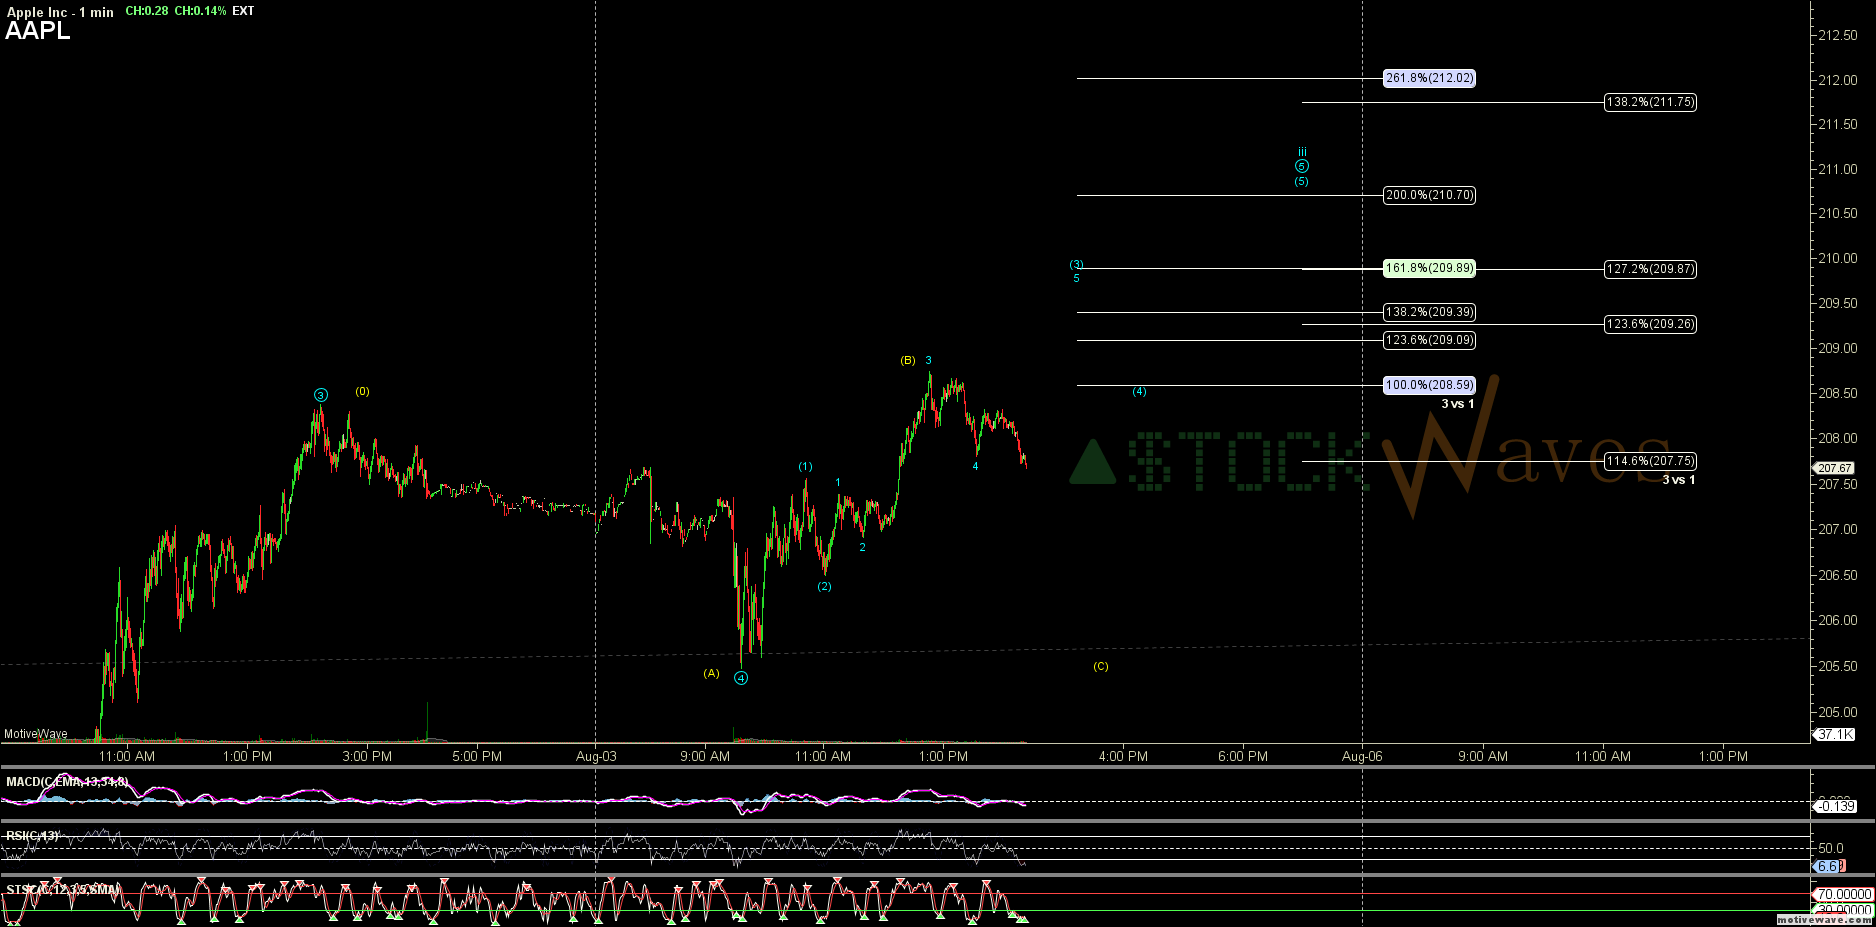 AAPL - Primary Analysis - Aug-03 1423 PM (1 min)